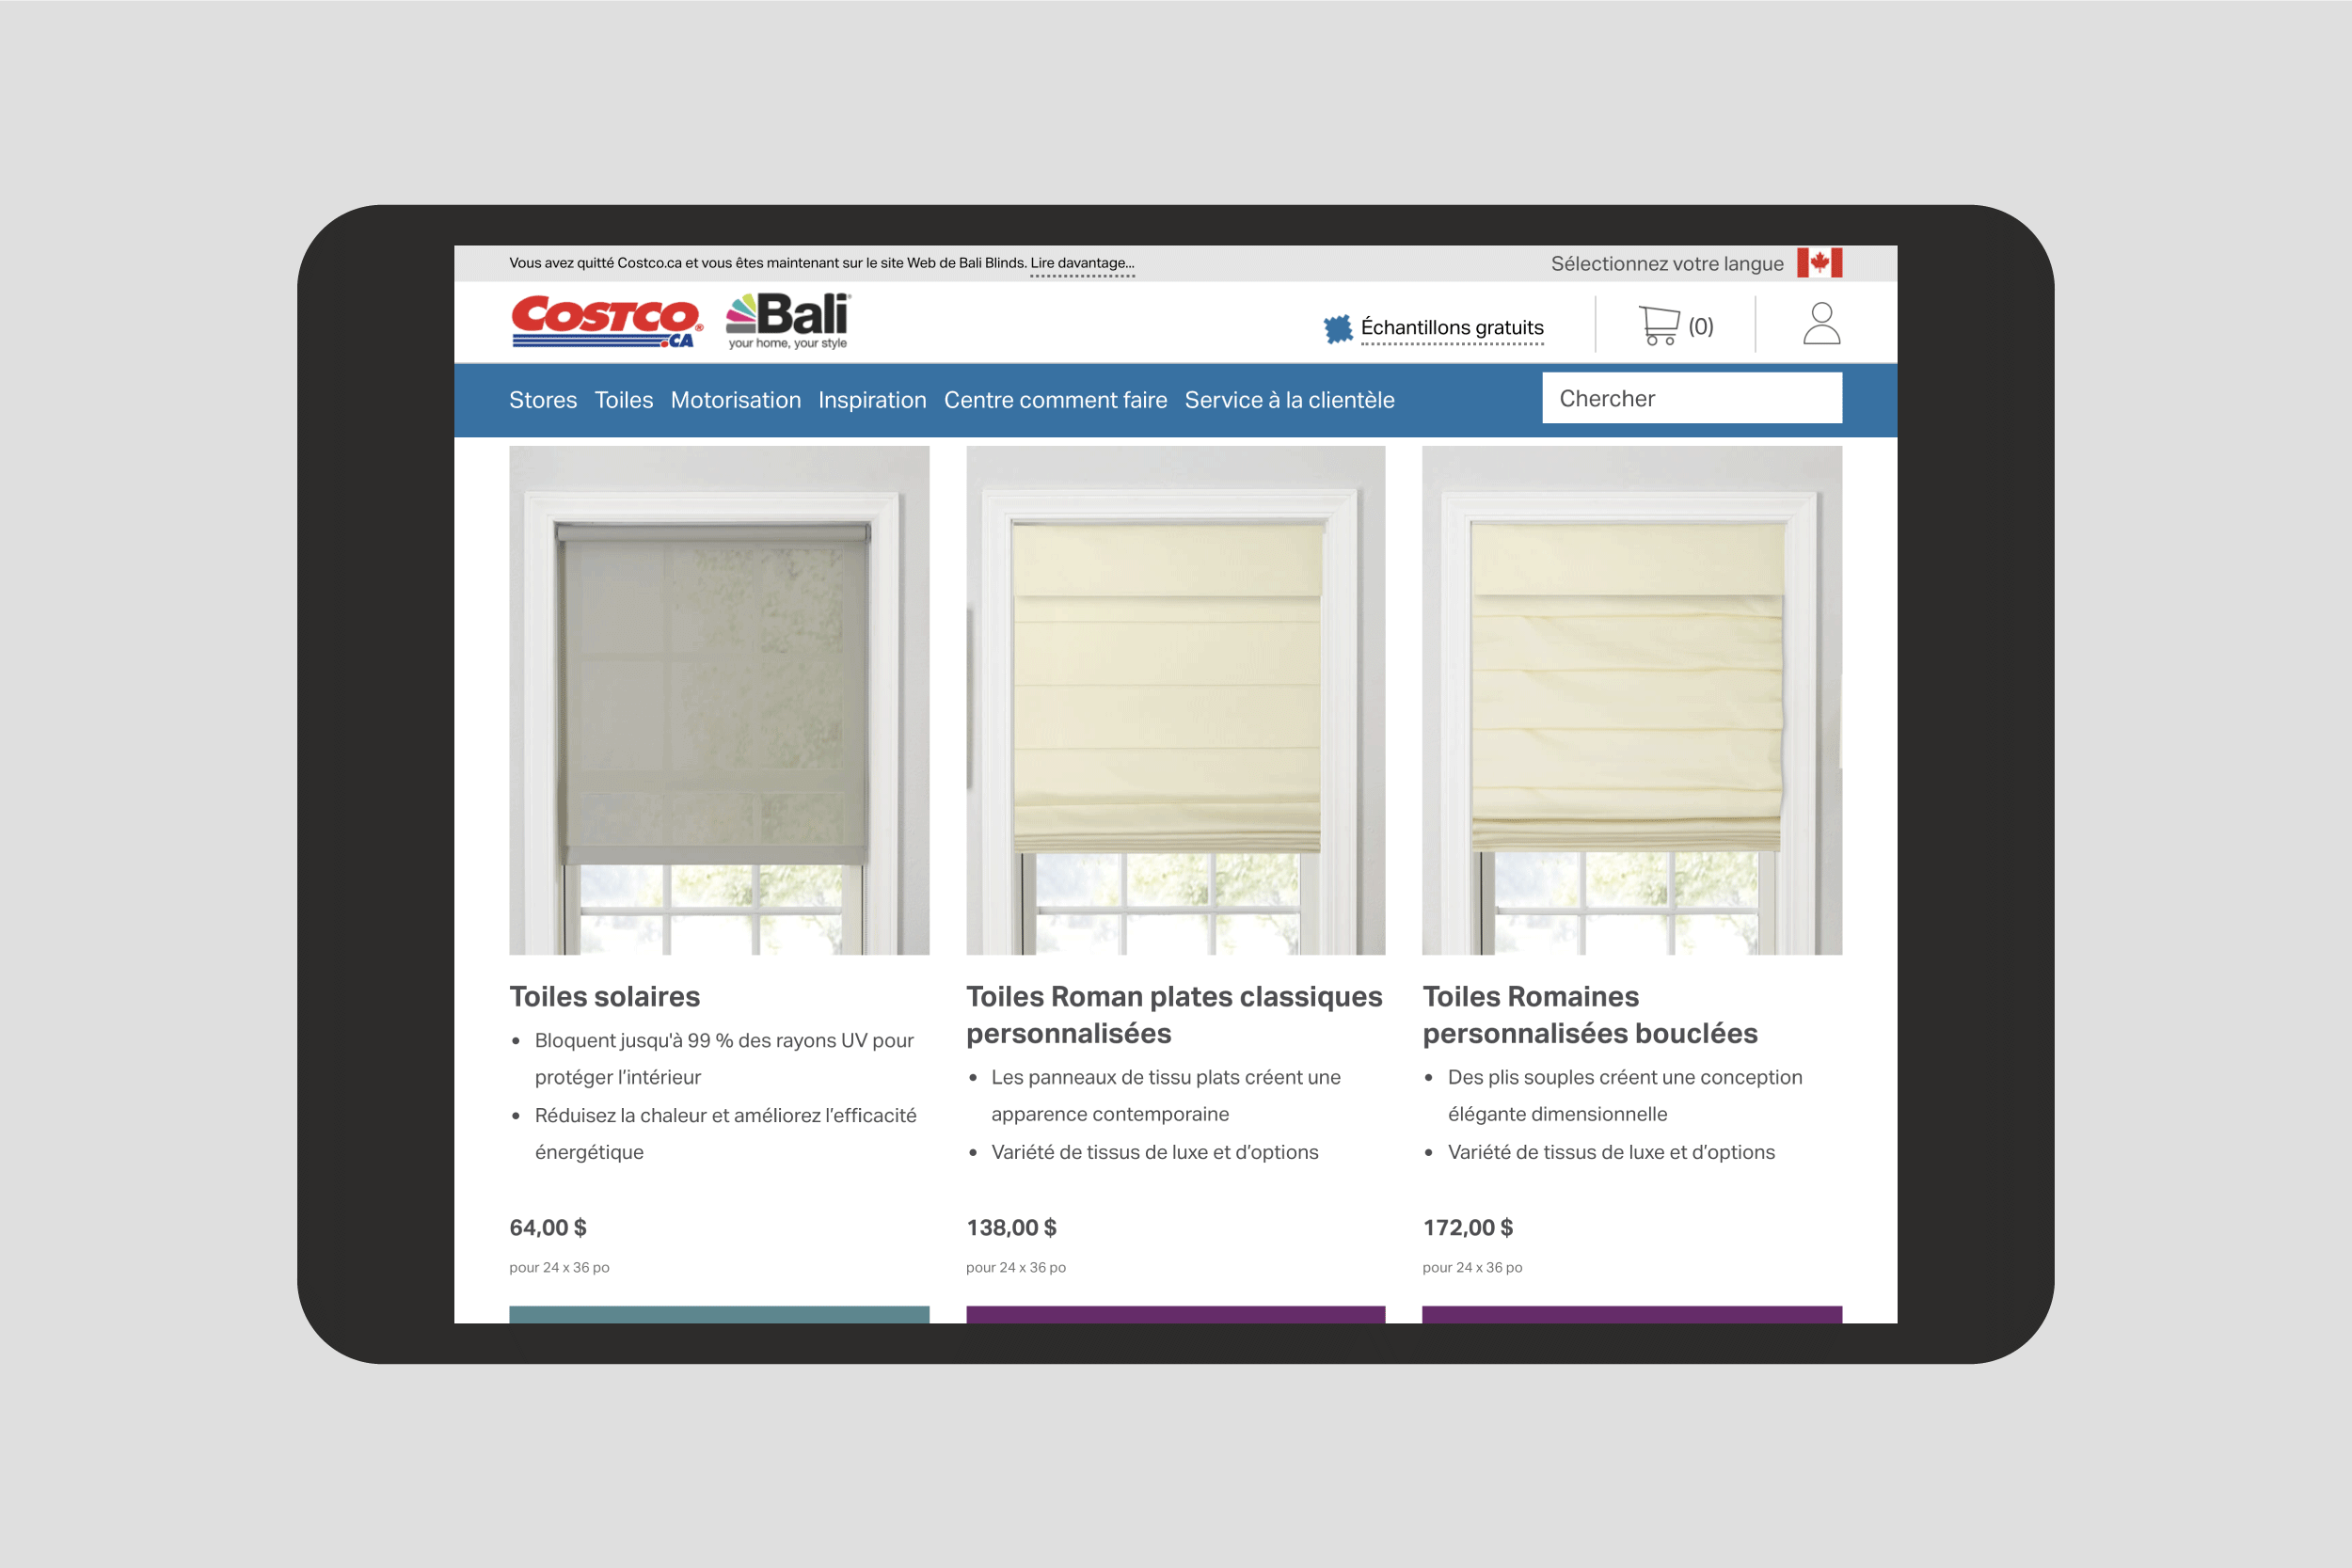 Shades landing page on the Costco Bali microsite